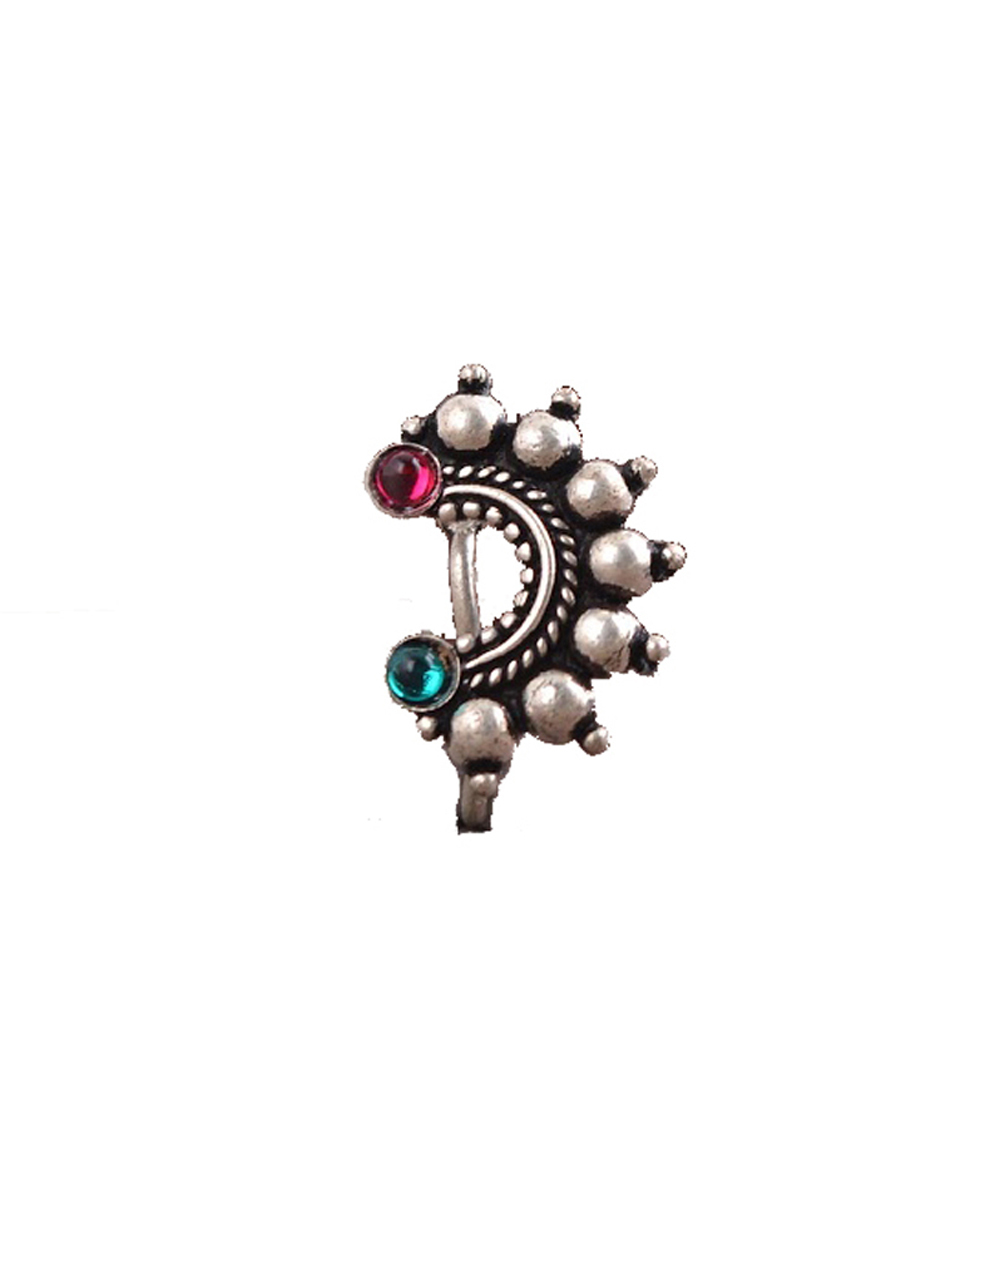 Oxidized Silver Finish Adorable Clip On Nath   Traditional Nath For Women & Girls